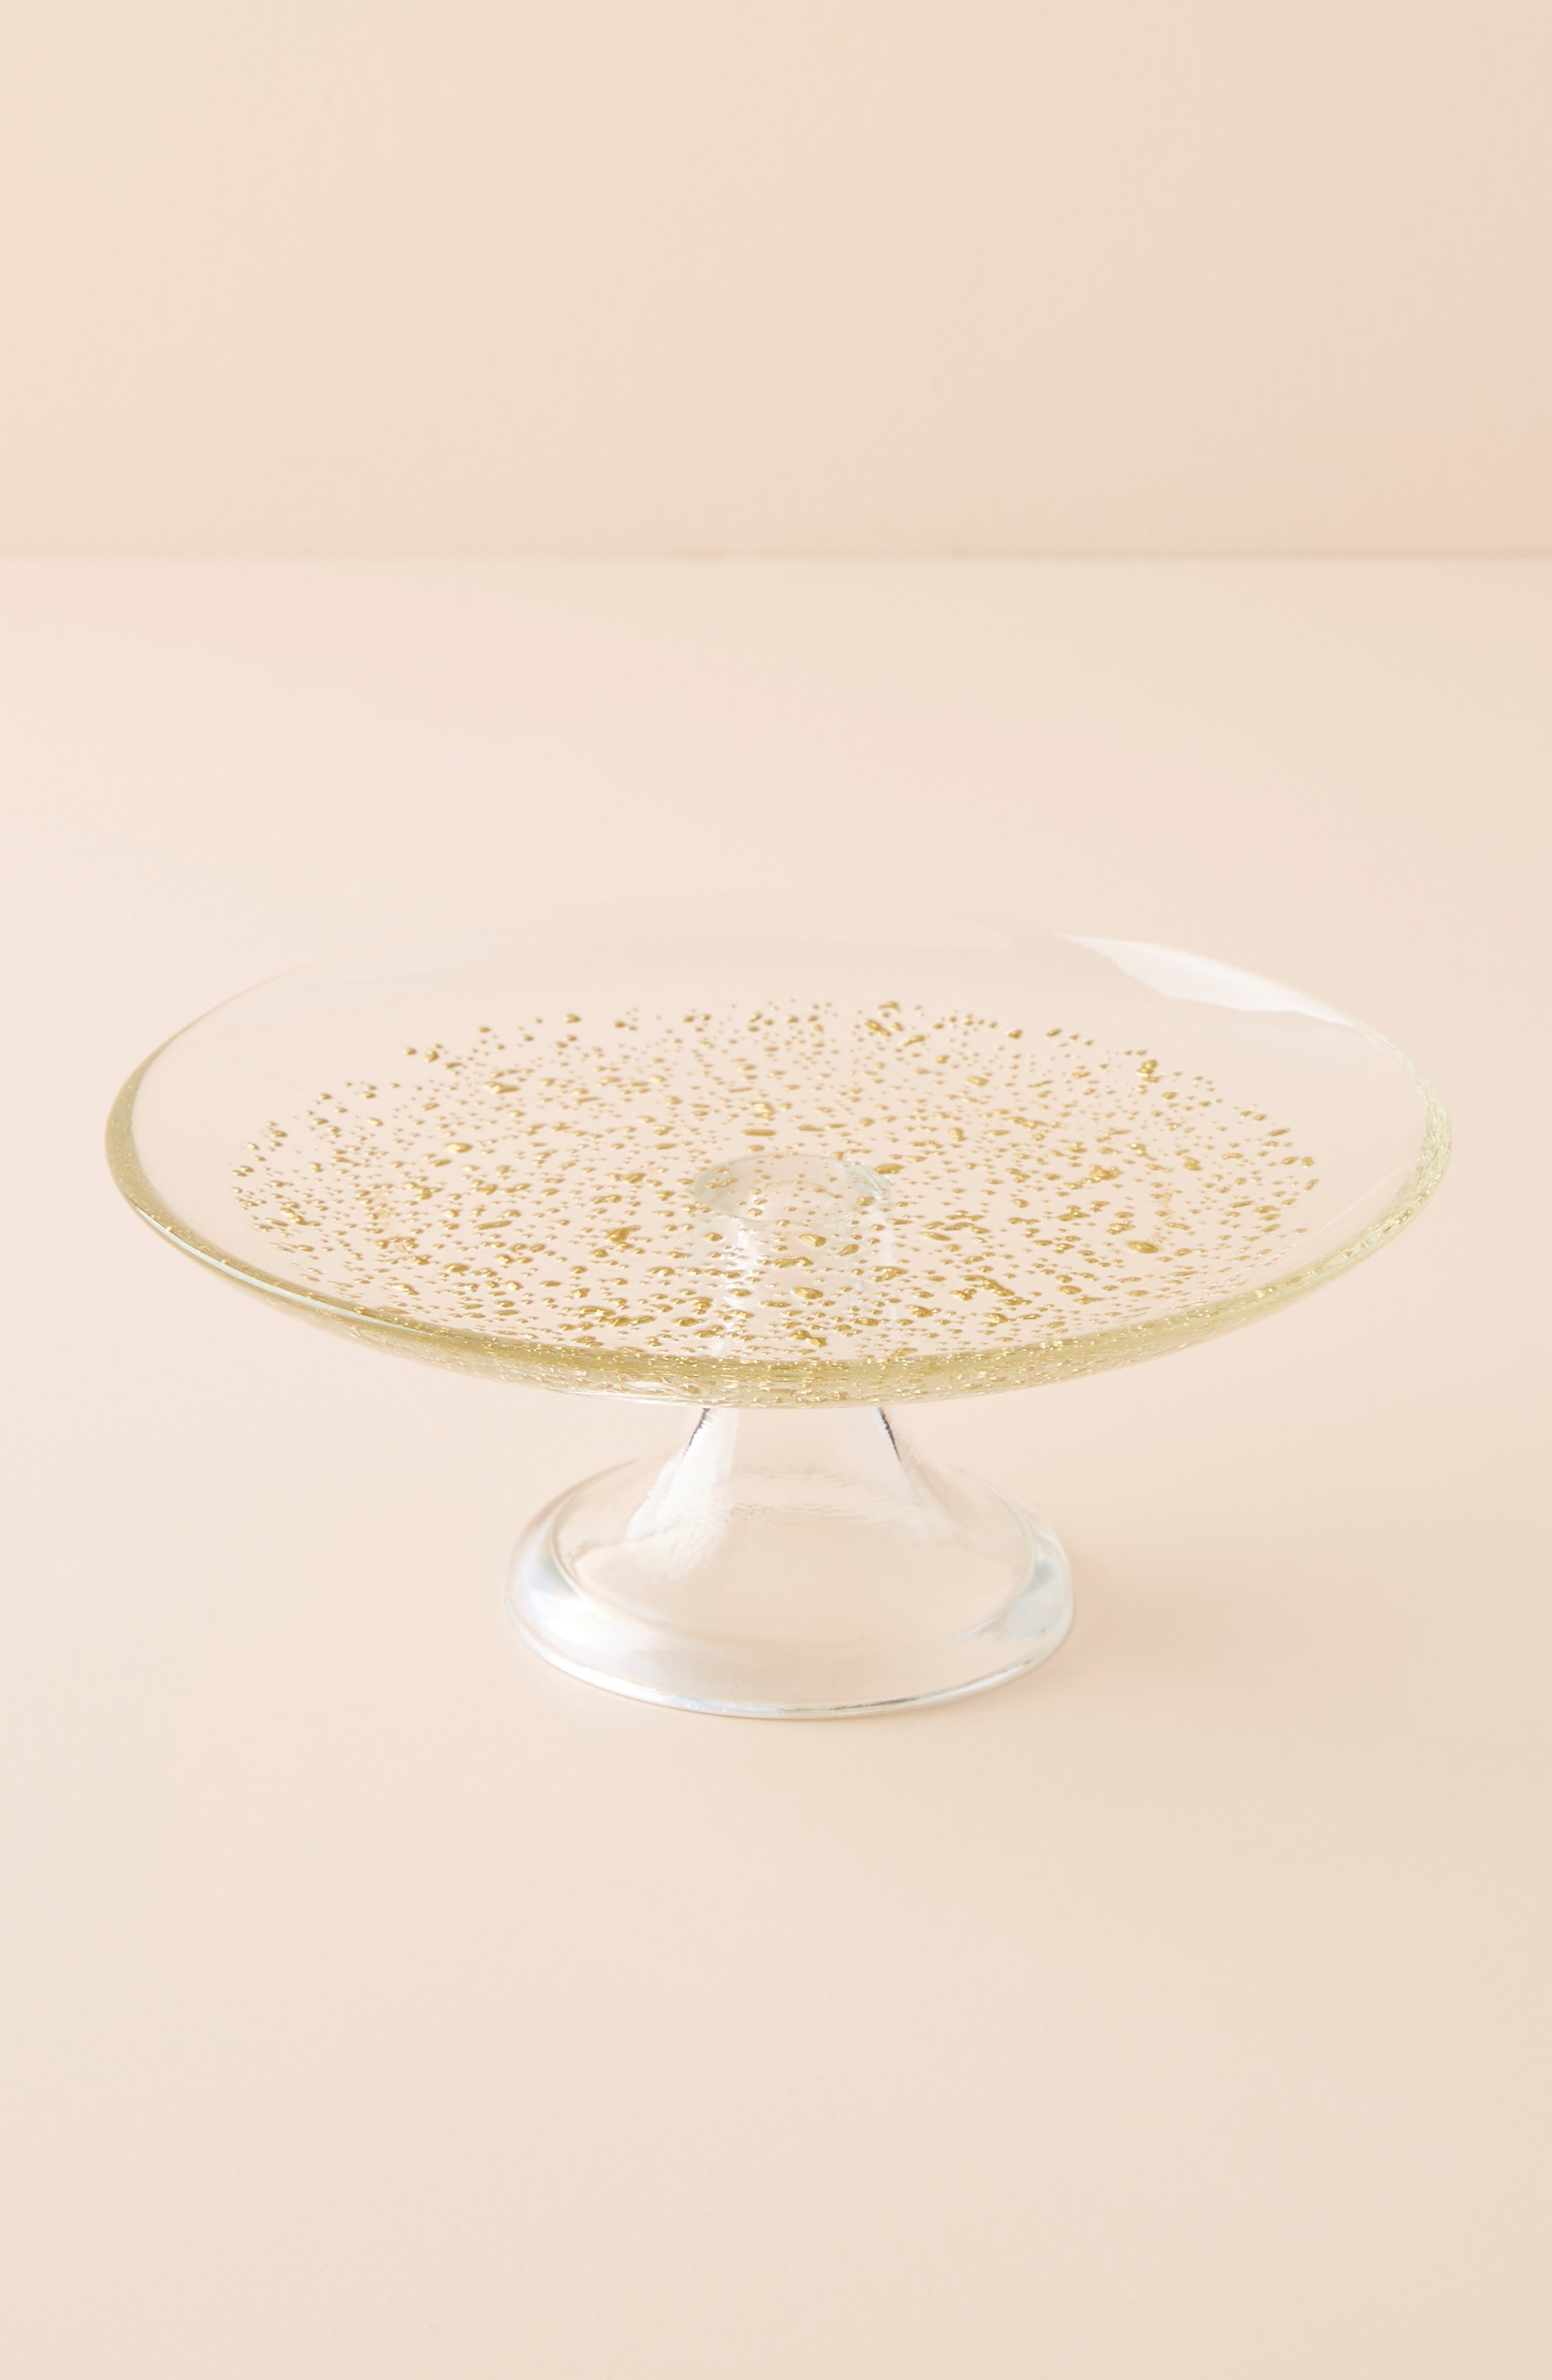 ANTHROPOLOGIE,                             Elio Cake Stand,                             Main thumbnail 1, color,                             CLEAR